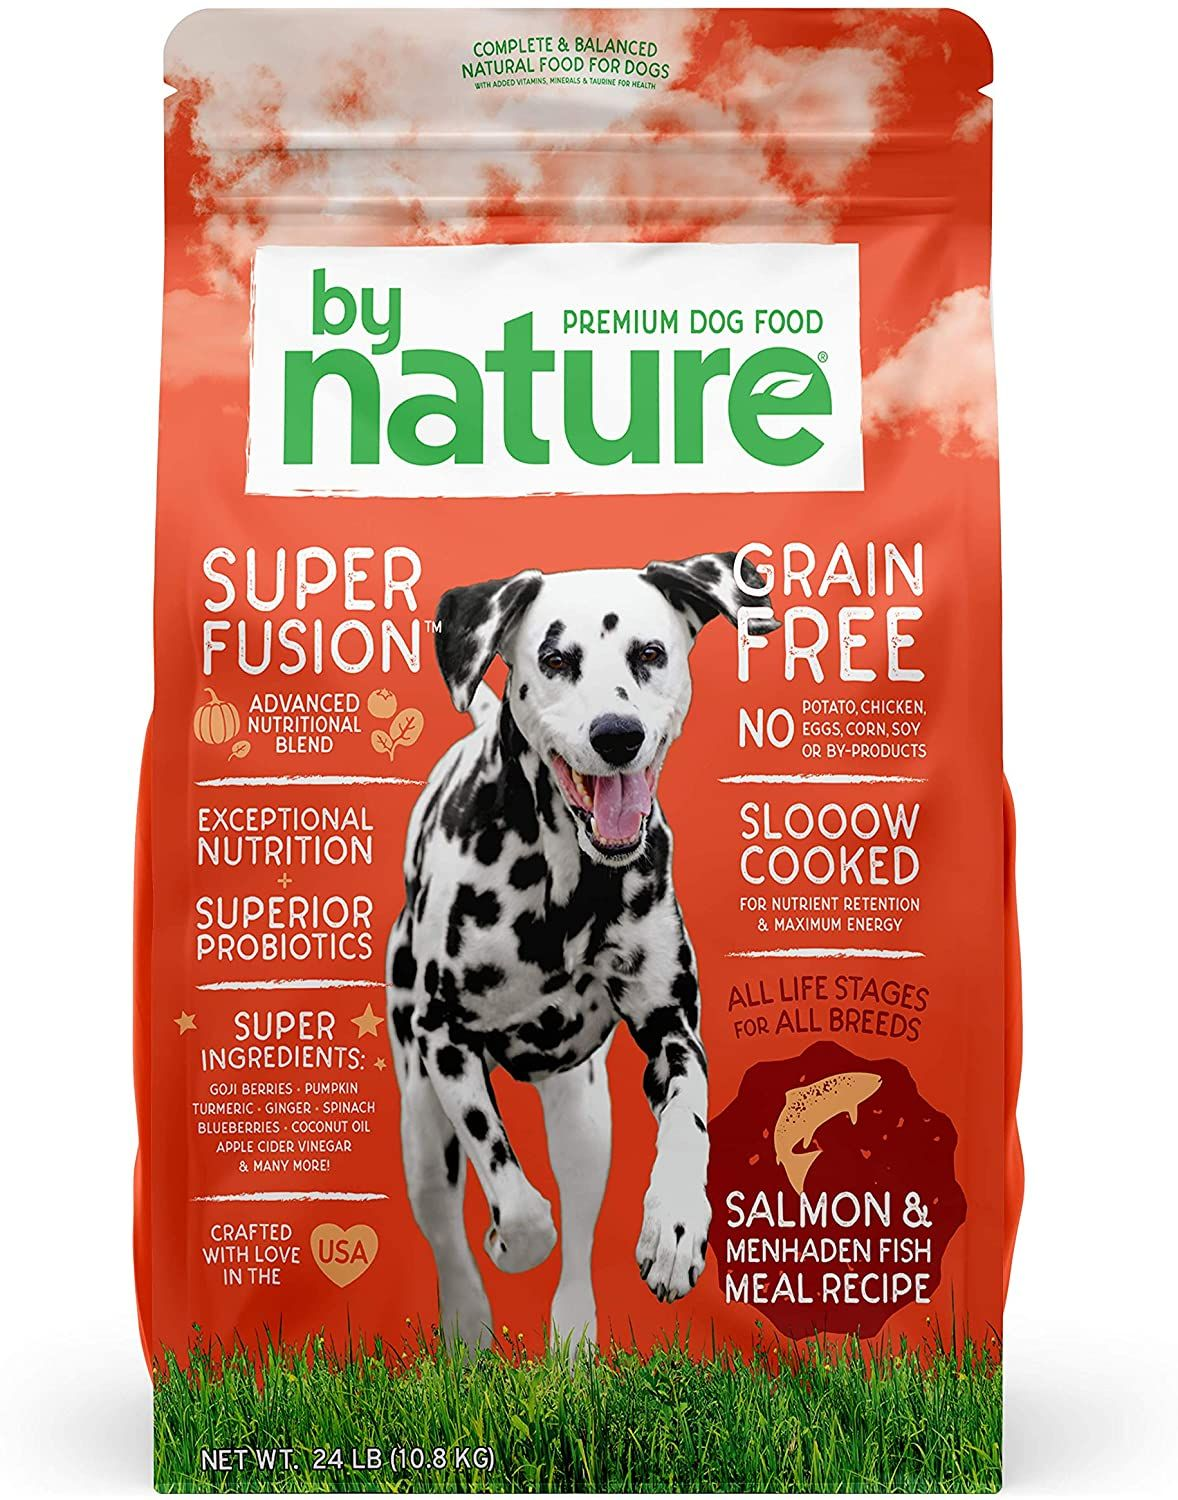 By Nature Pet Foods Grain Free Dog Food Made In Usa Grain Free Dry Dog Food With Superfood Ingredien In 2021 Dog Food Recipes Dog Food Reviews Premium Dog Food